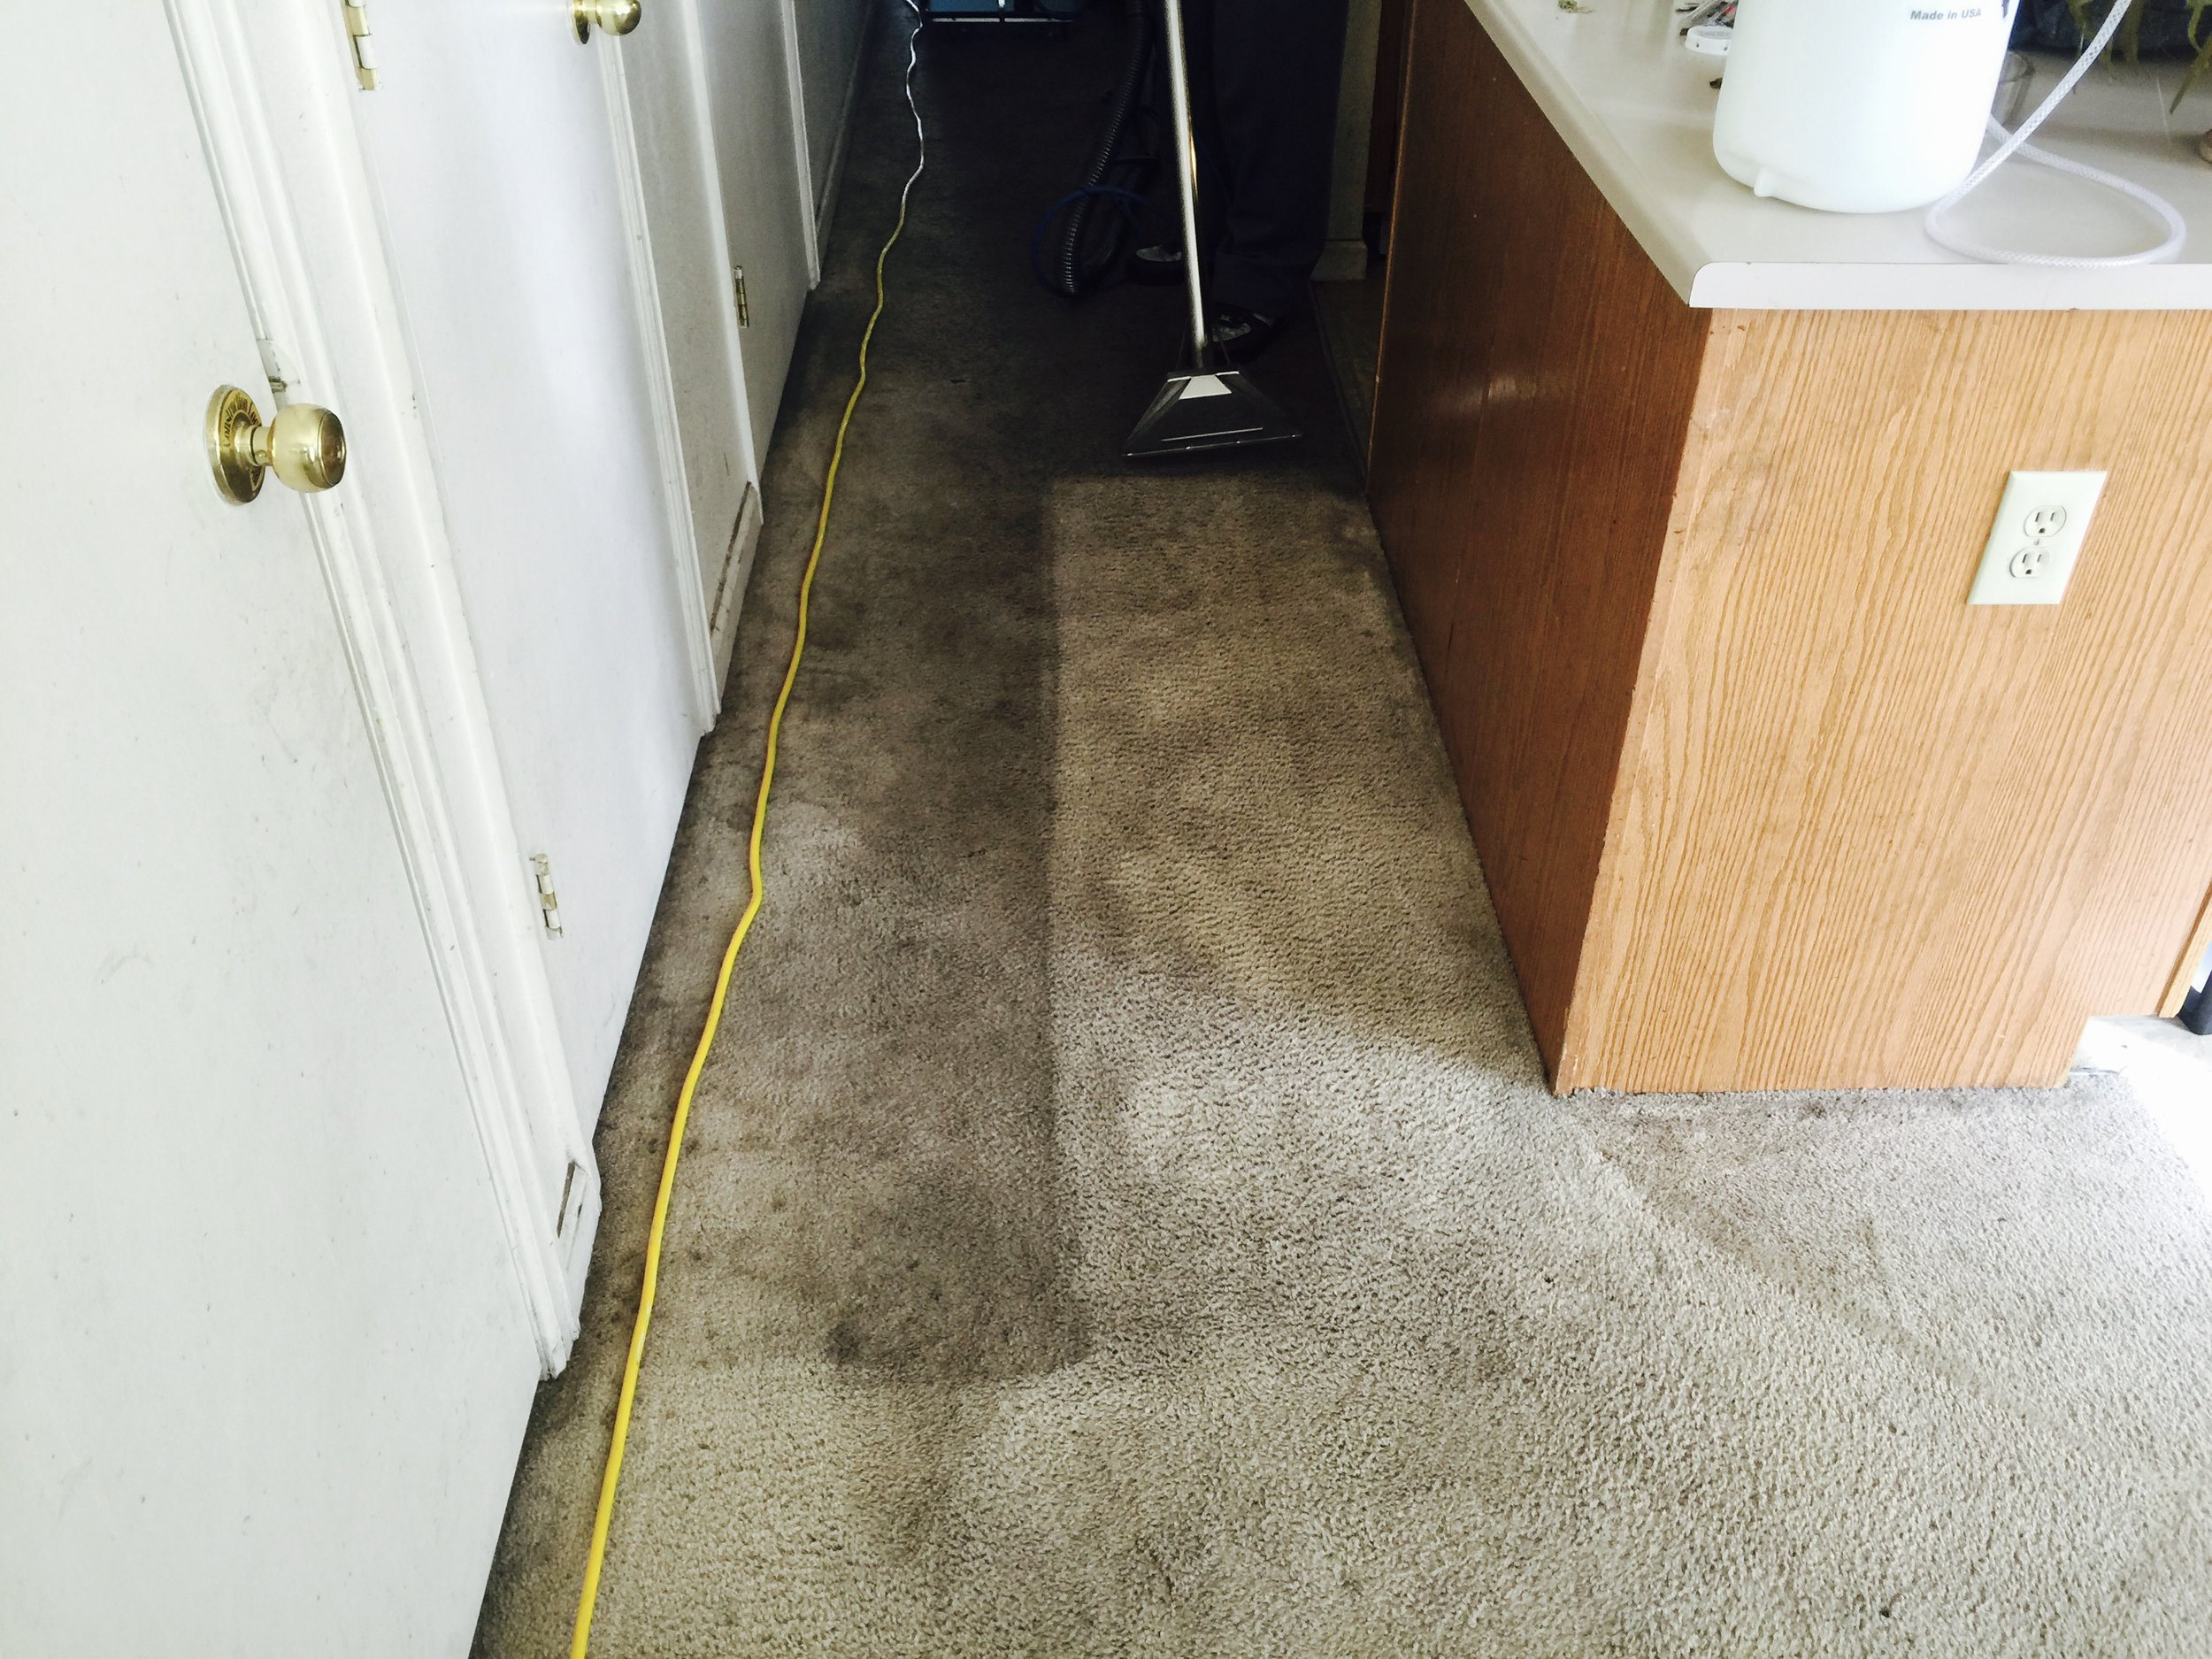 Carpet Cleaning - $60 per hourOur certified carpet cleaning technician is trained to know how to treat and clean your carpet professionally. From different types of carpet to chemicals you may need to treat troublesome areas we have the